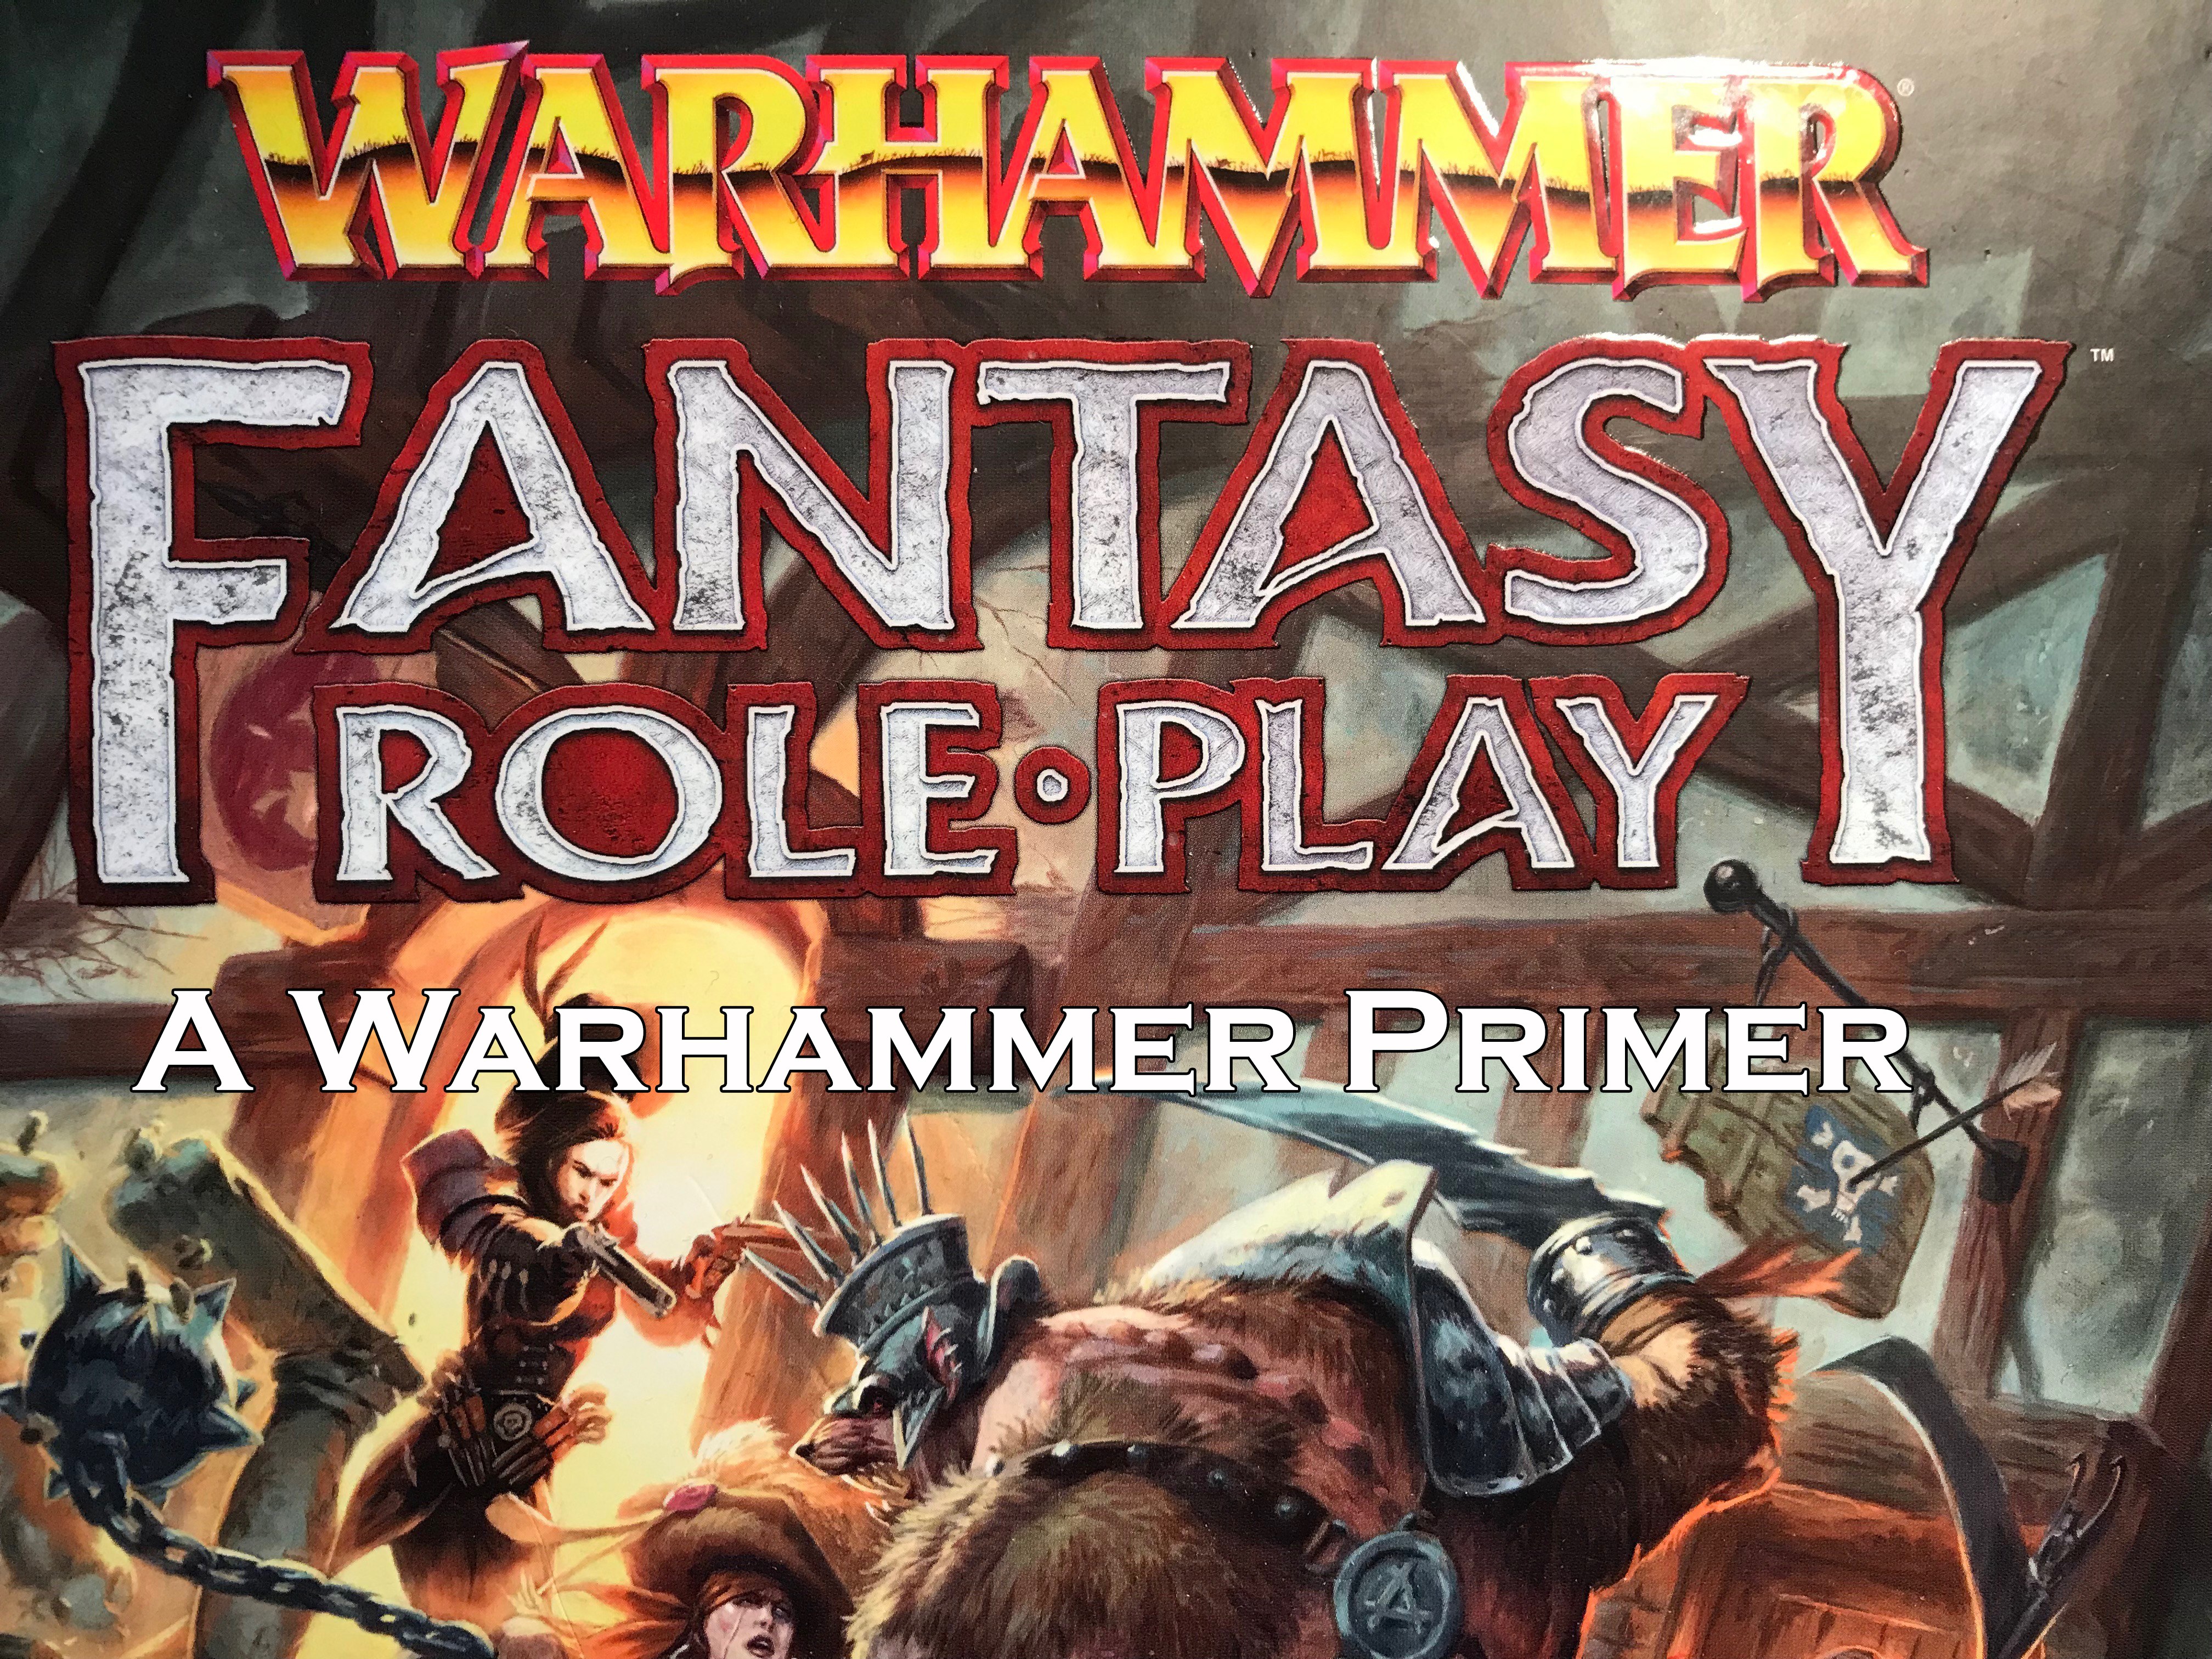 Is Warhammer Fantasy Roleplay for me? – A Warhammer Primer – mindlands